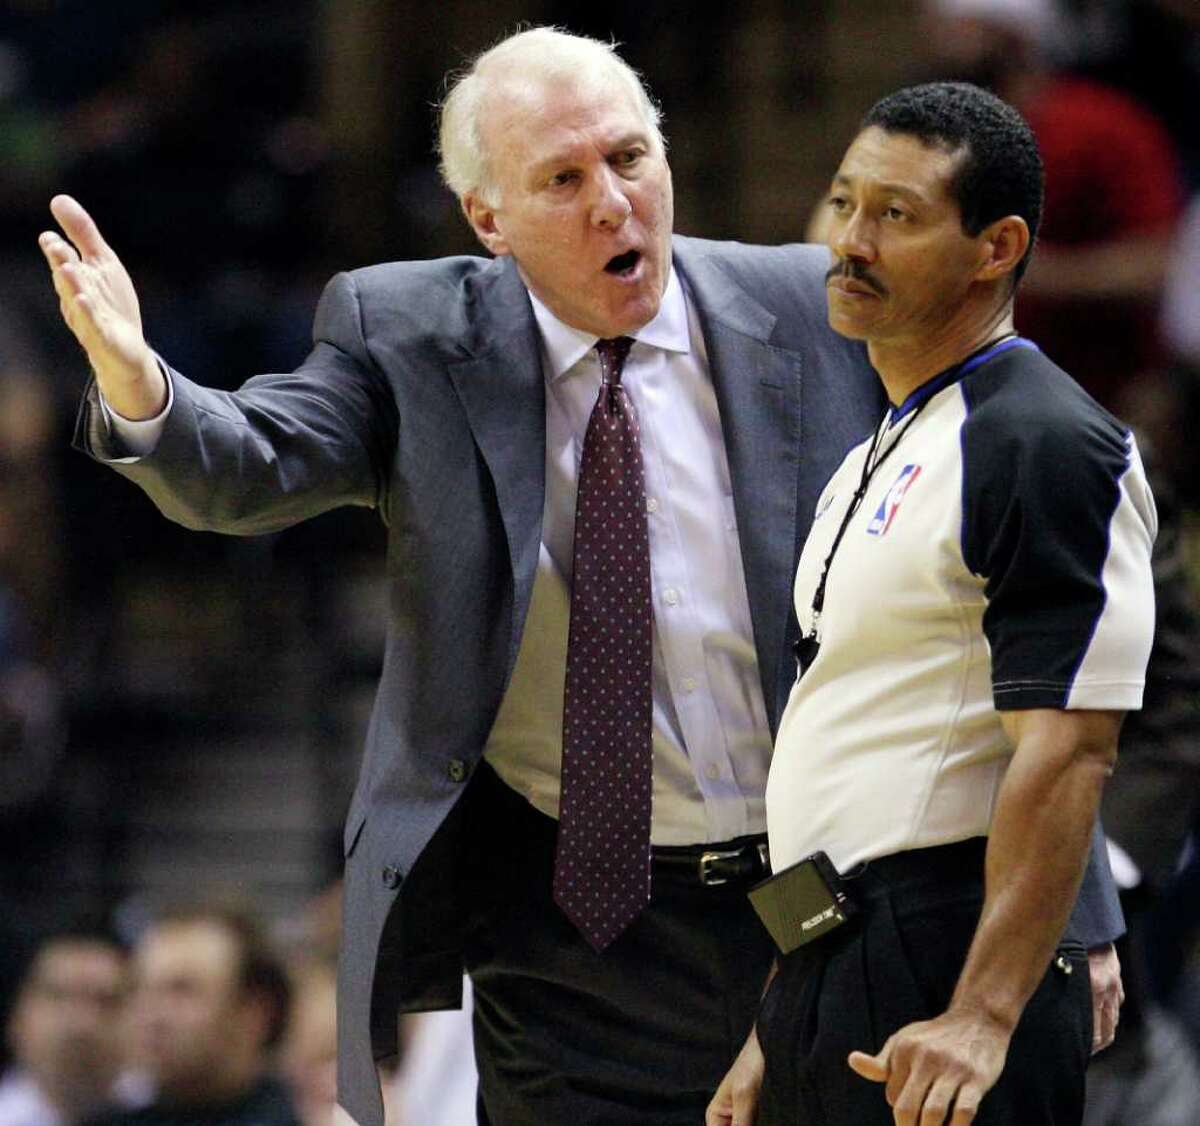 FOR SPORTS - Spurs' head coach Gregg Popovich looks for a call from official Bill Kennedy during second half action against the Warriors Monday March 21, 2011 at the AT&T Center. The Spurs won 111-96. (PHOTO BY EDWARD A. ORNELAS/eaornelas@express-news.net)